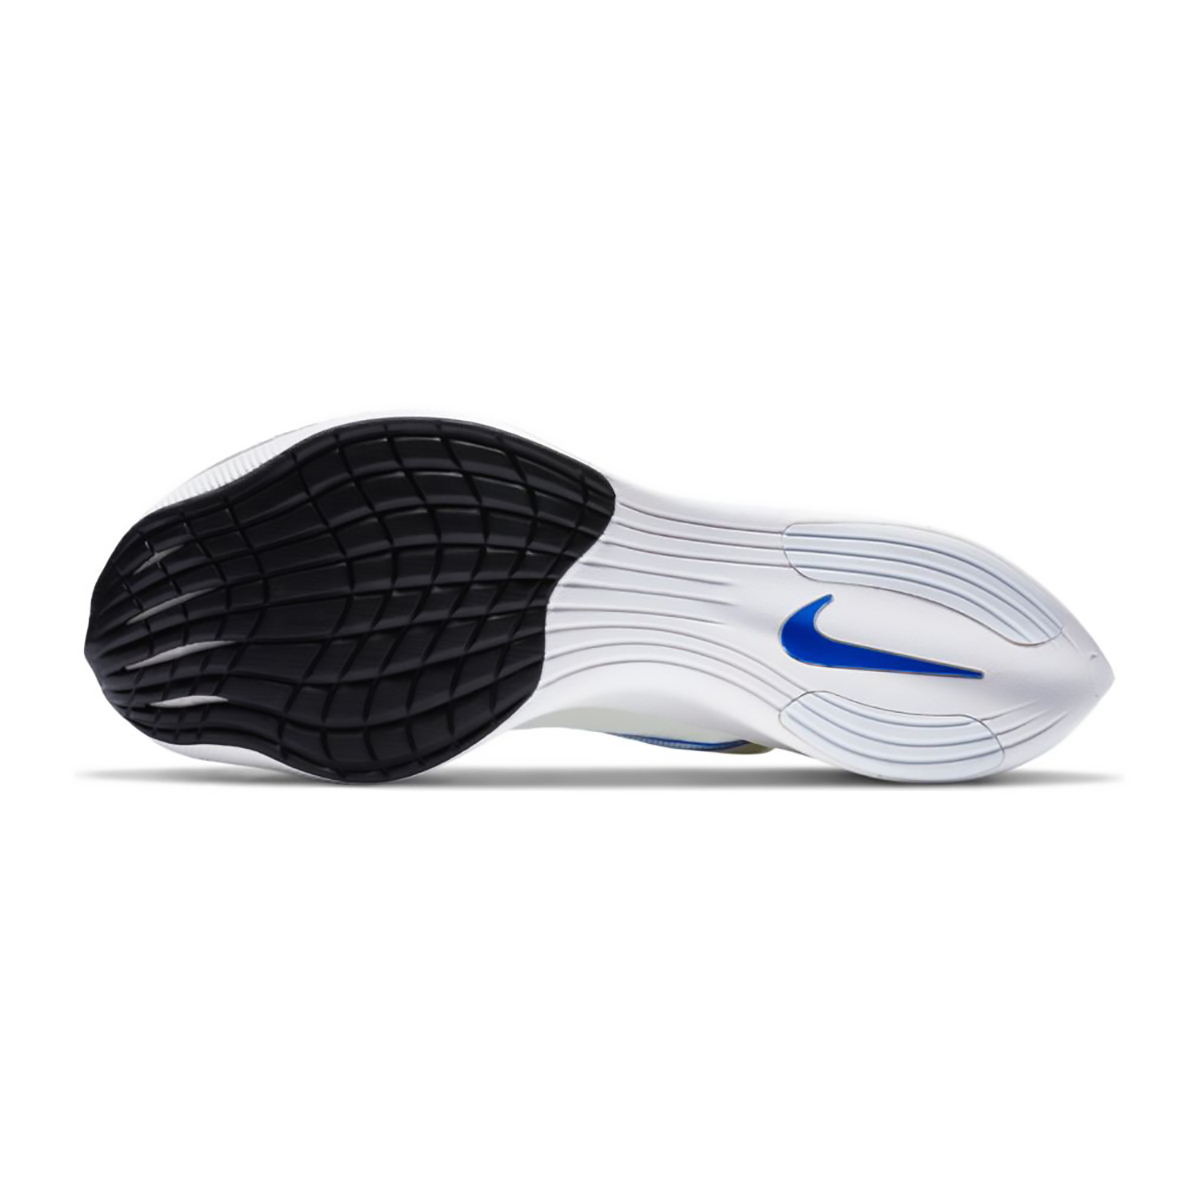 Nike ZoomX Vaporfly NEXT% Running Shoe - Color: White/Racer Blue/Cyber/Black - Size: M5/W6.5 - Width: Regular, White/Racer Blue/Cyber/Black, large, image 4